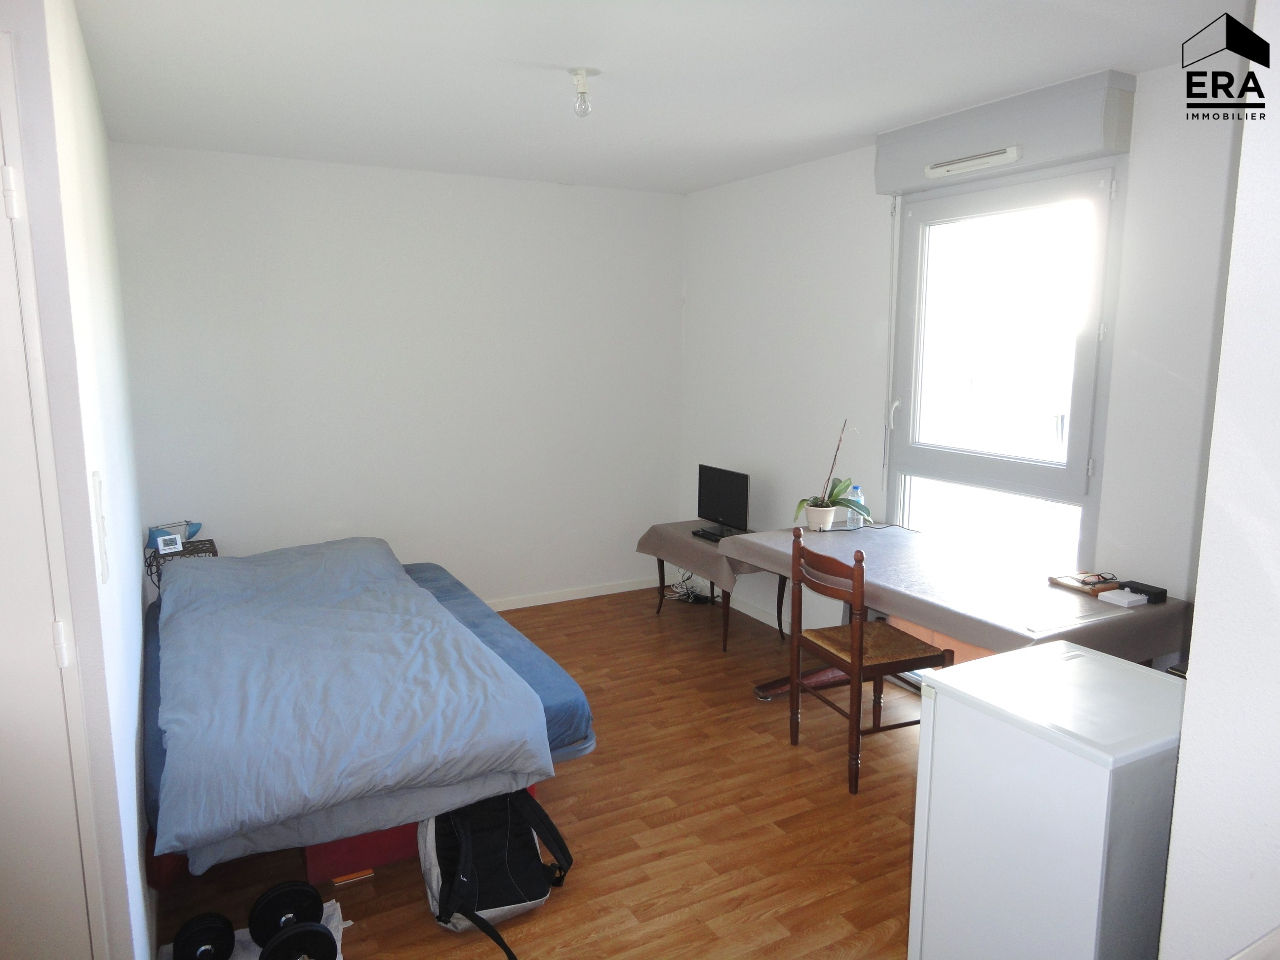 appartement a vendre angers 1 pi ces 24 8 m era angers maine immobilier. Black Bedroom Furniture Sets. Home Design Ideas